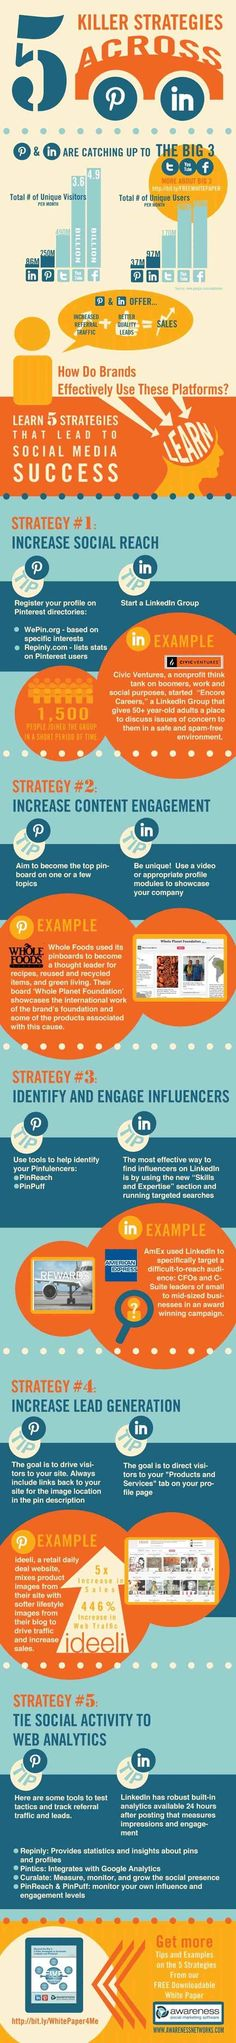 5 Killer Strategies Across Pinterest And LinkedIn #infographic